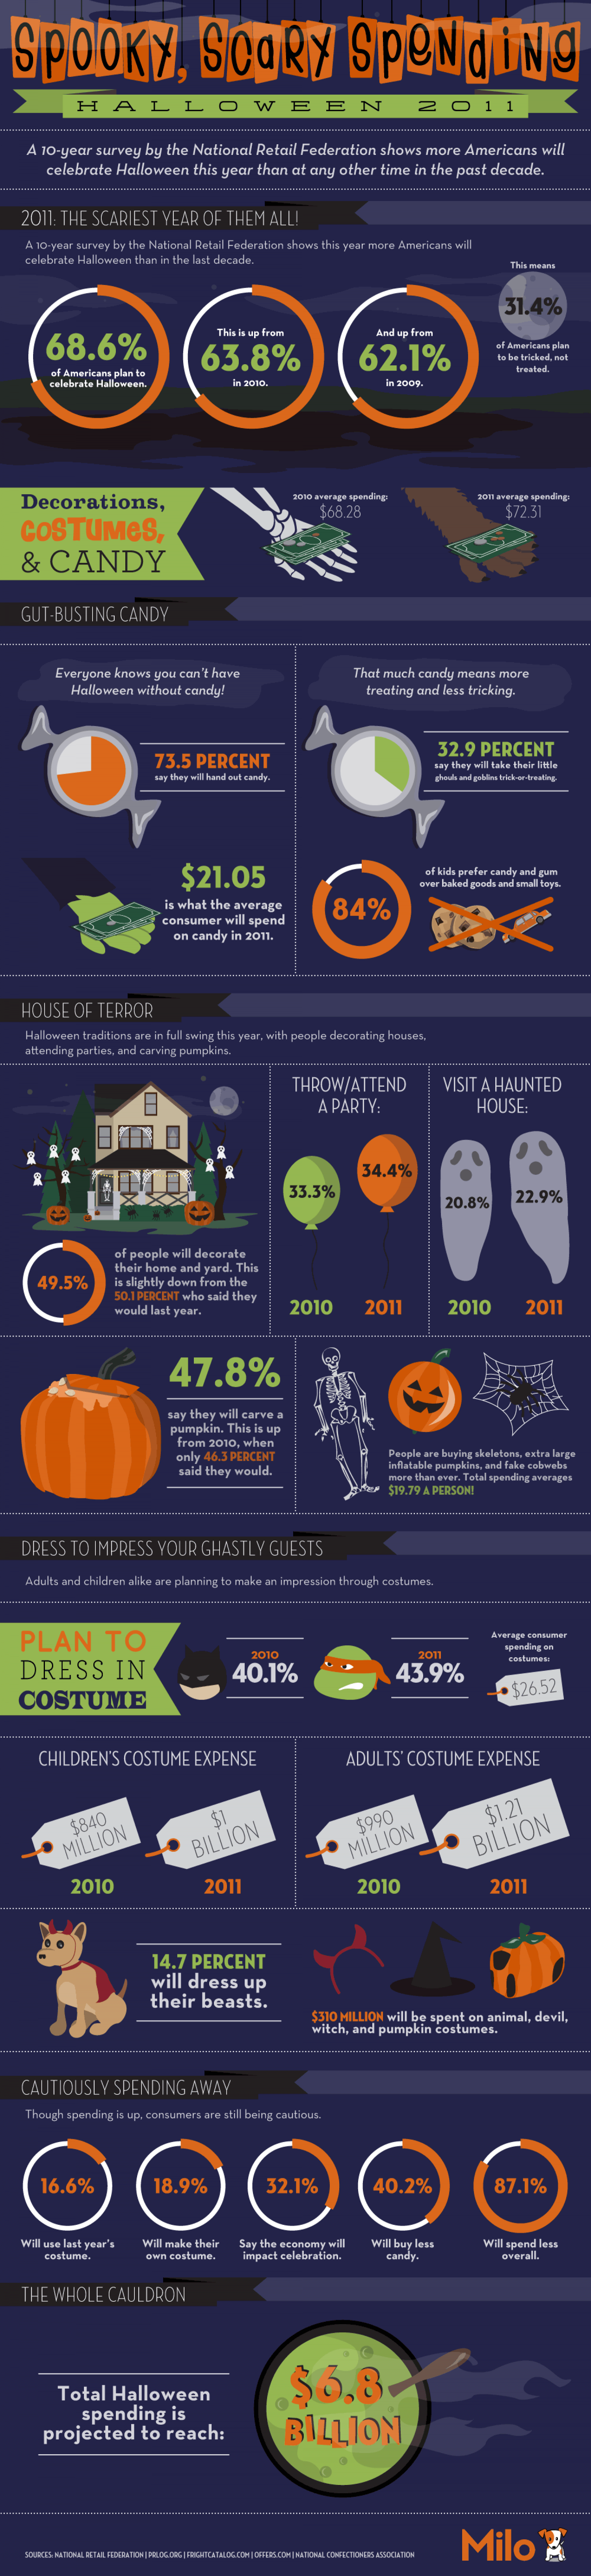 Spooky, Scary Spending: Halloween 2011  Infographic